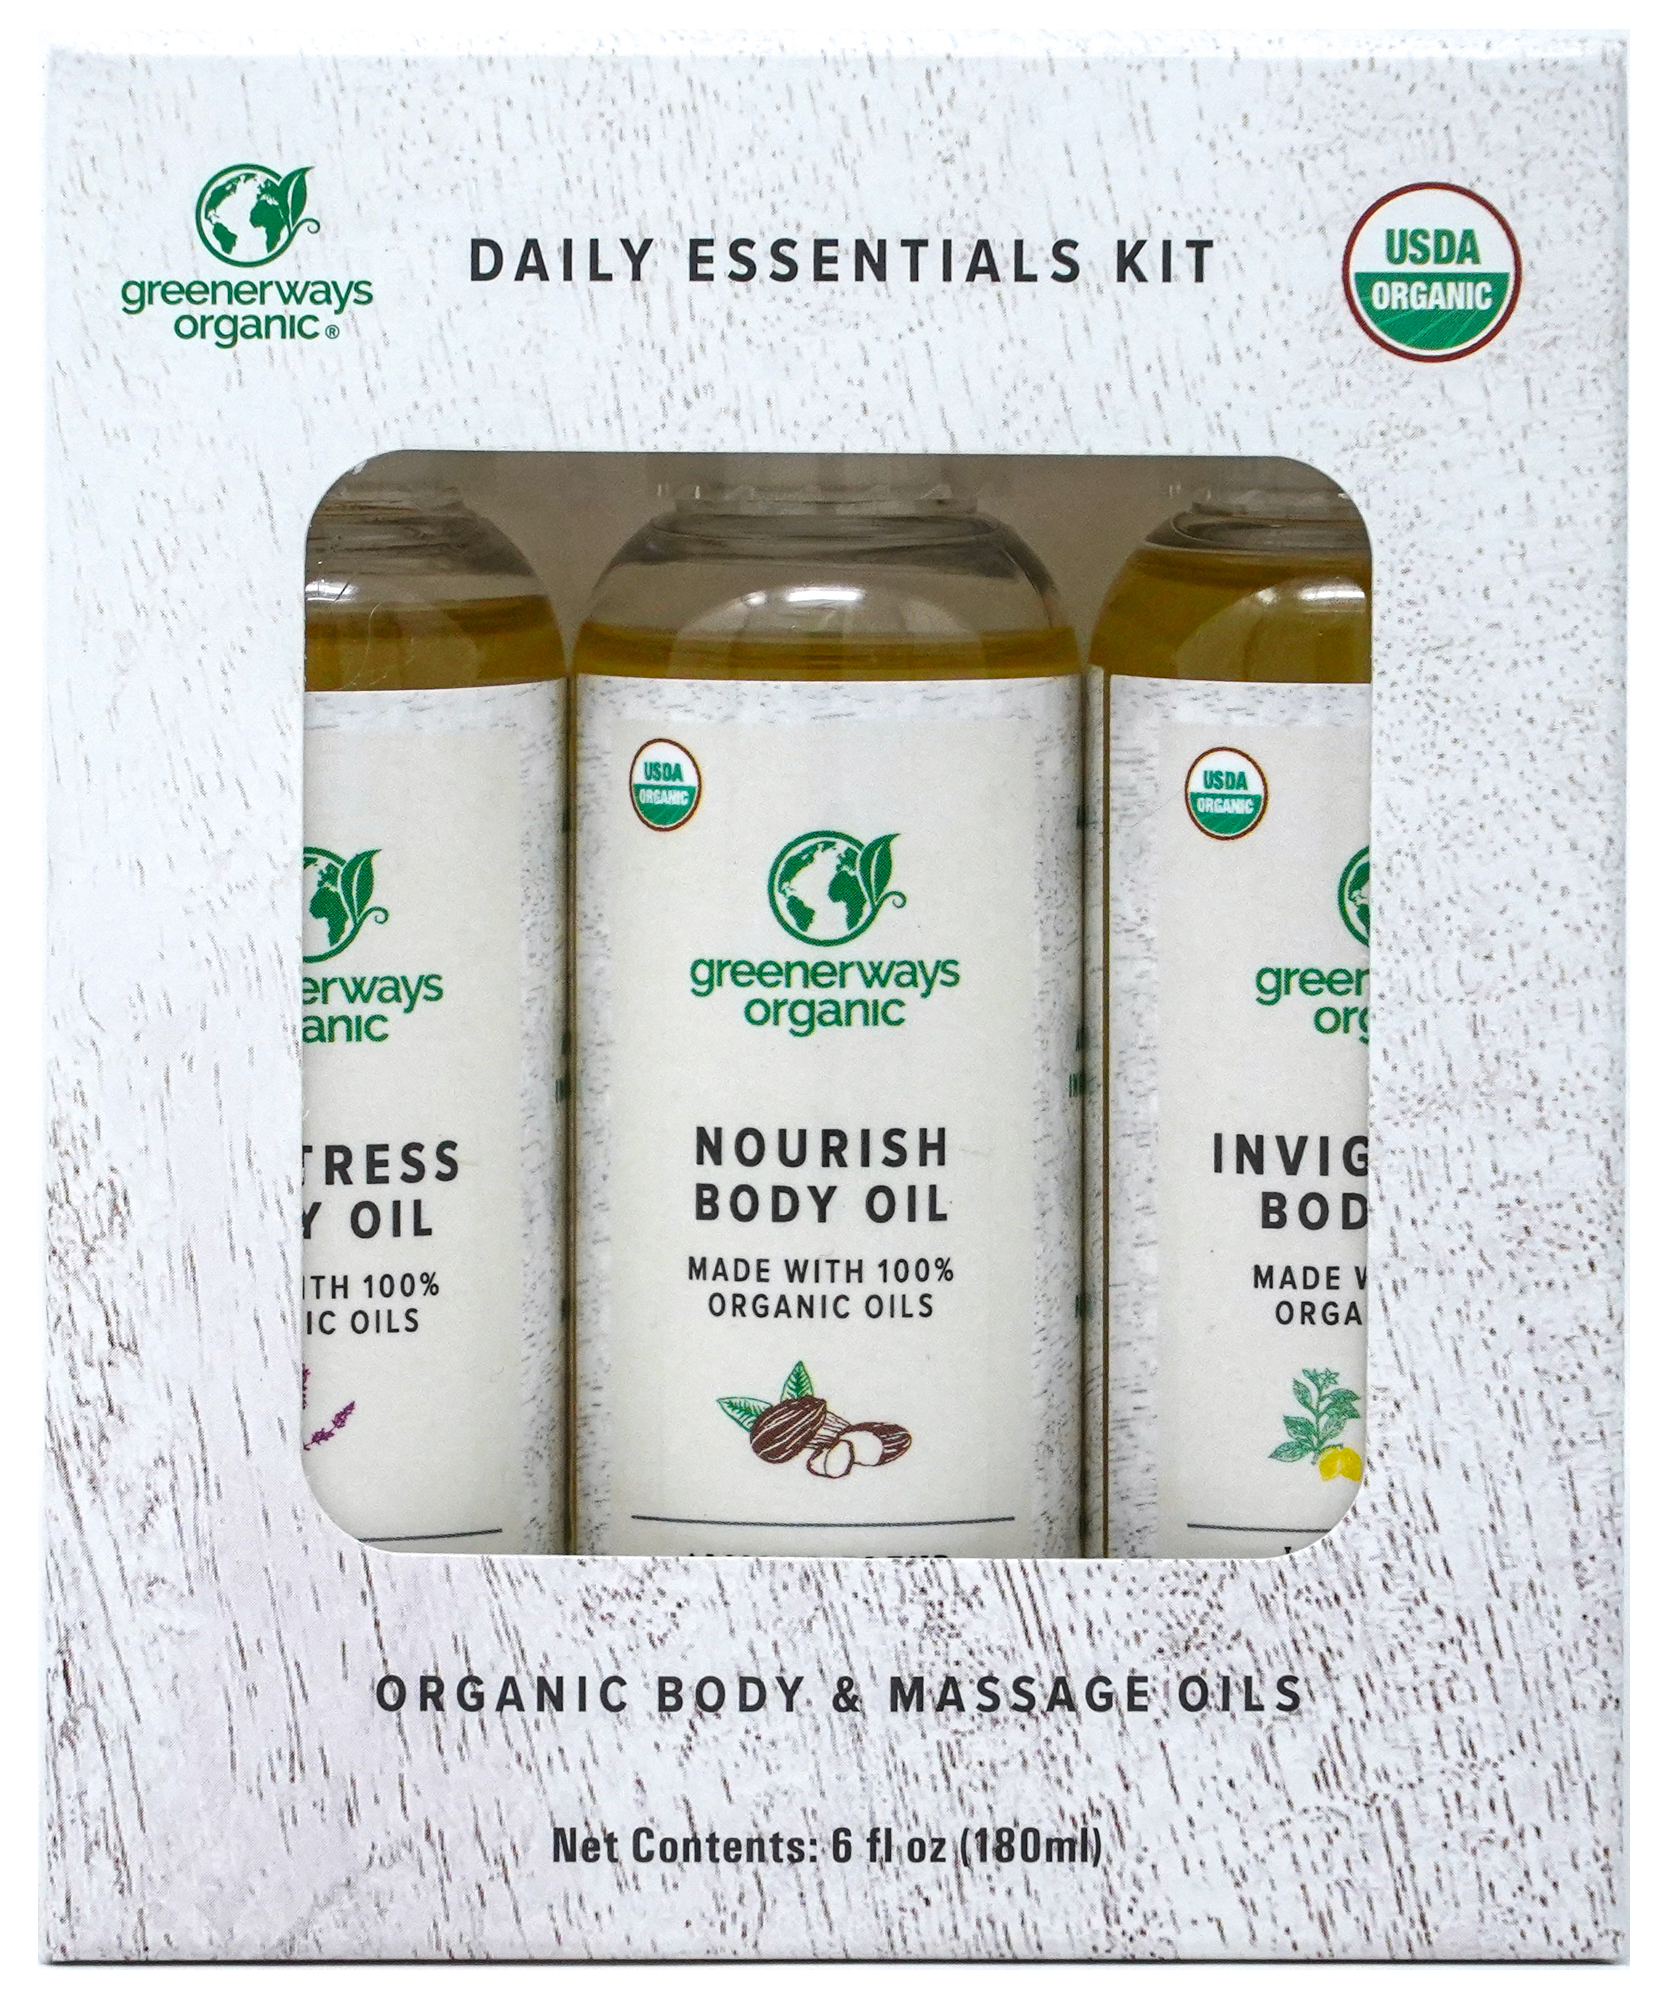 Greenerways Organic Daily Essentials Body Oil 3 Pack (2oz)